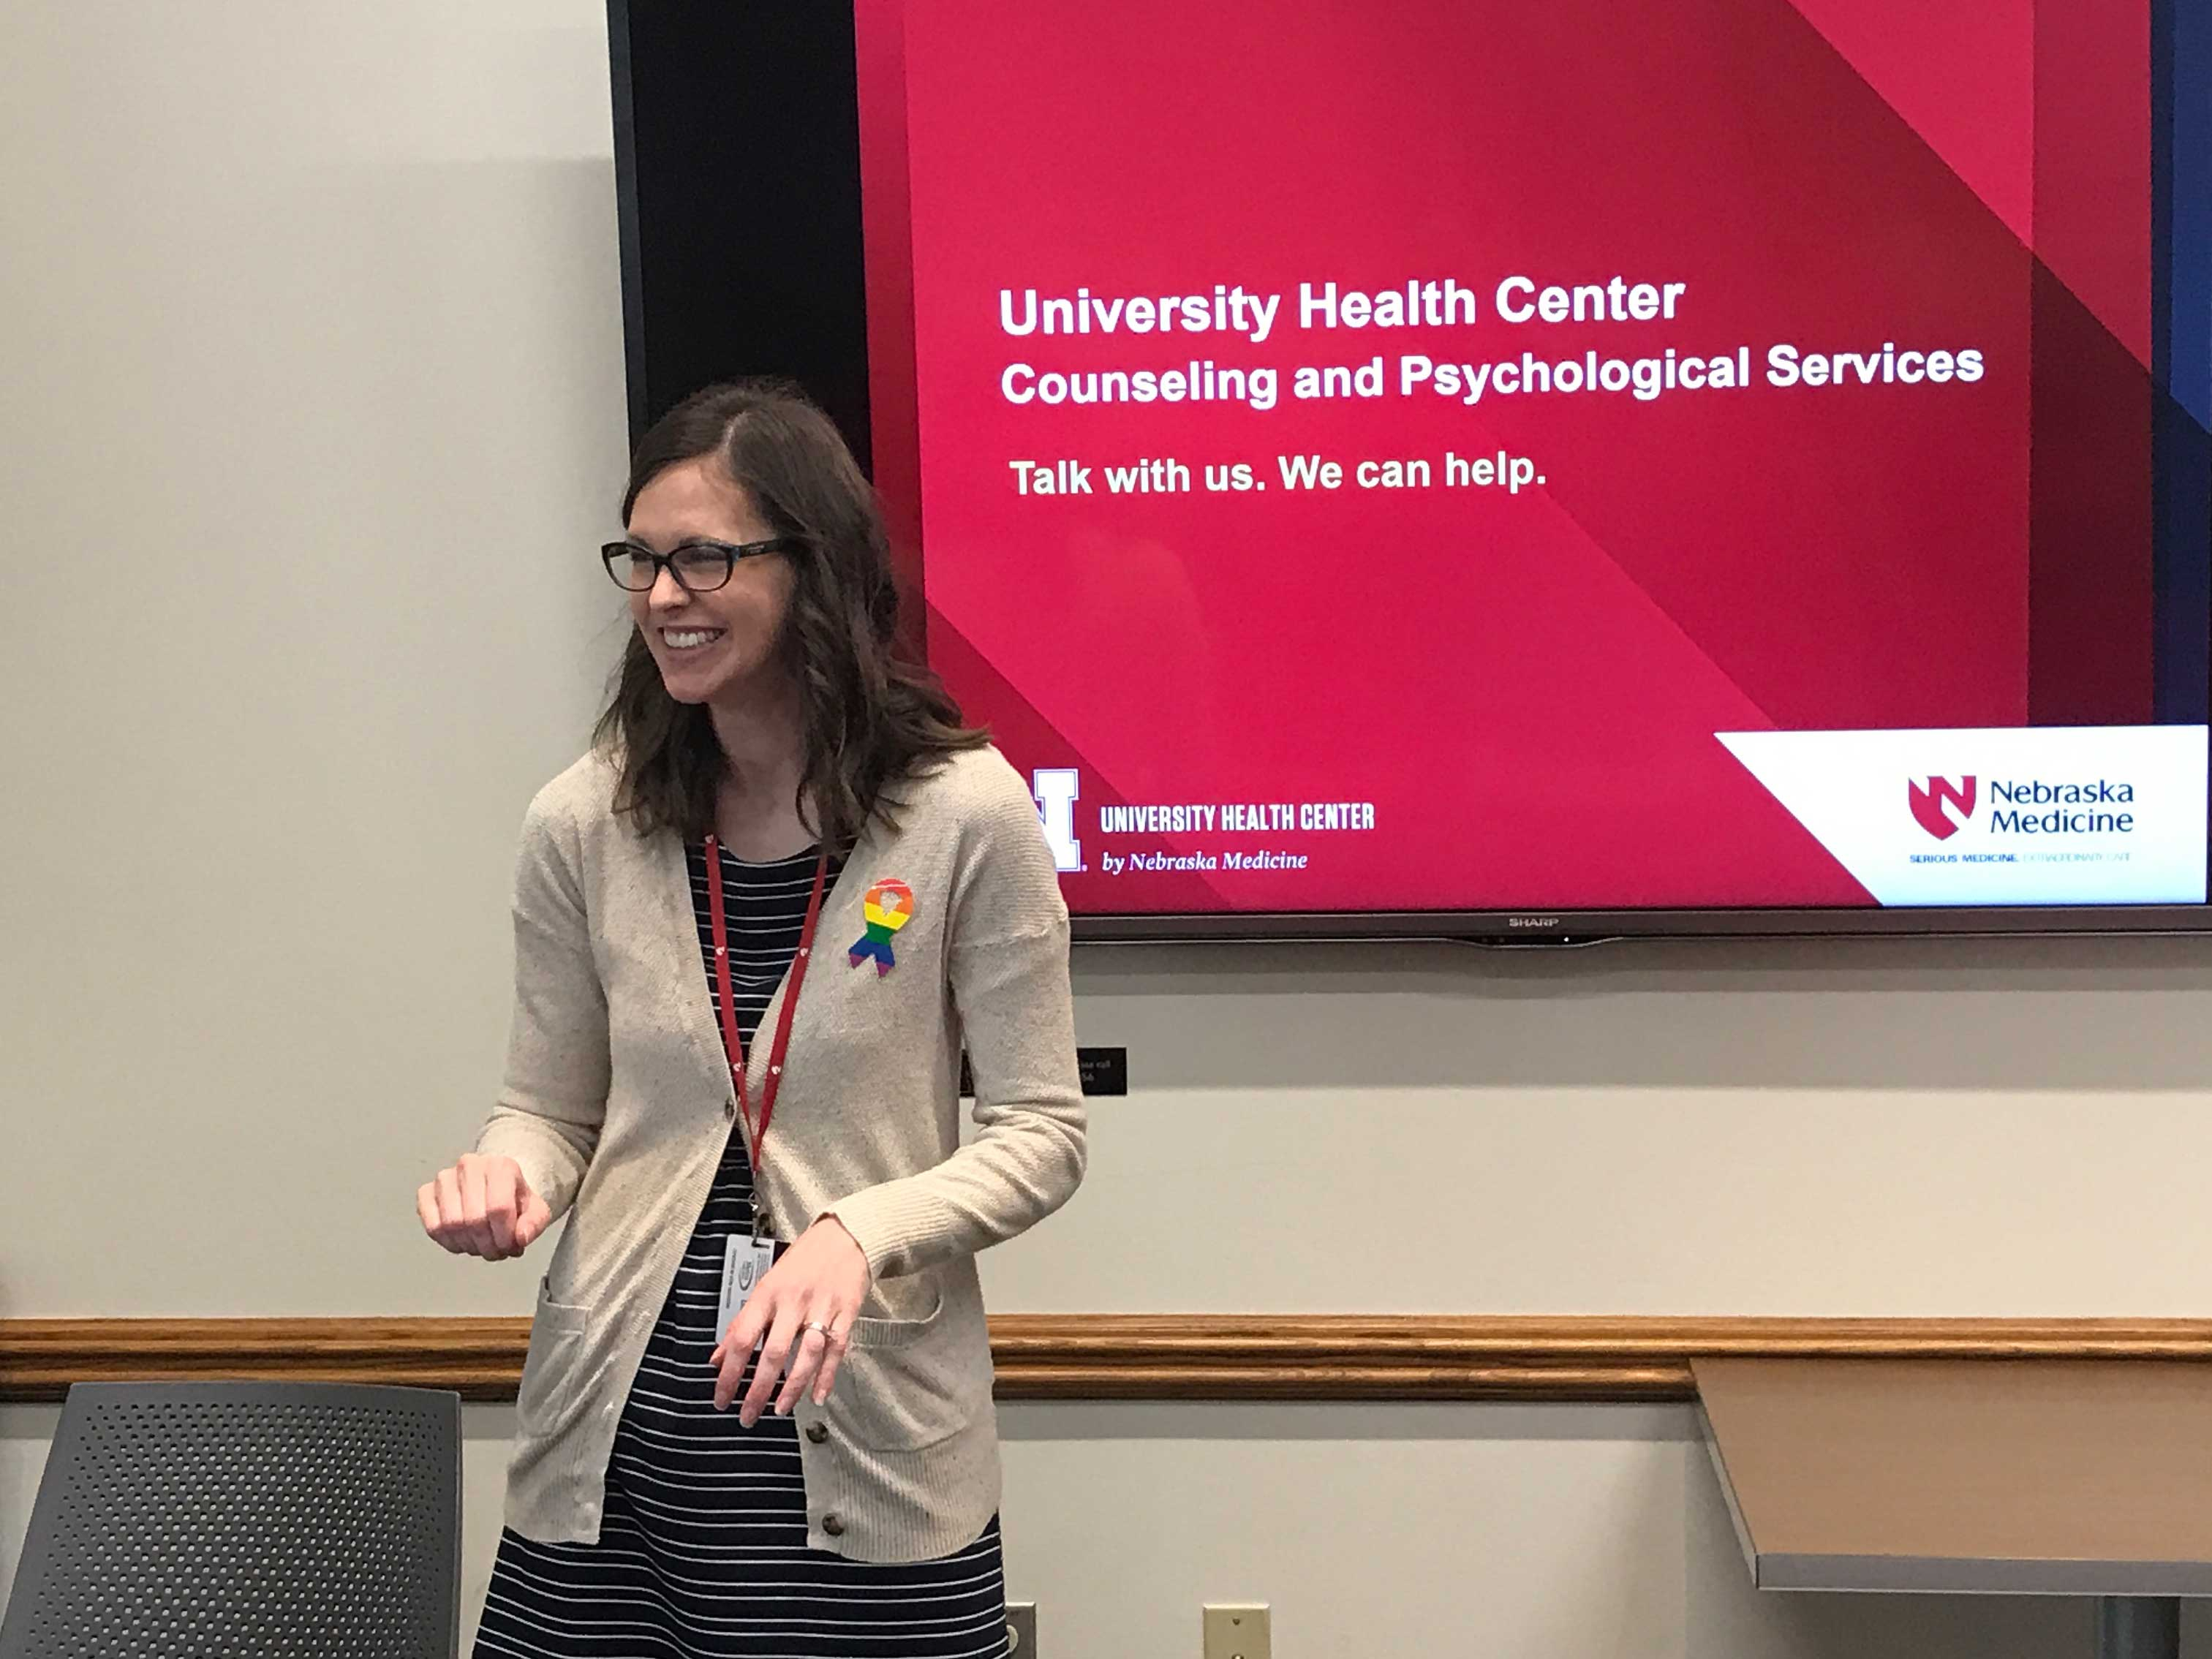 Cynthia Von Seggern, psychologist and group and outreach coordinator with CAPS, gives a presentation explaining counseling services available through the University Health Center managed by Nebraska Medicine.